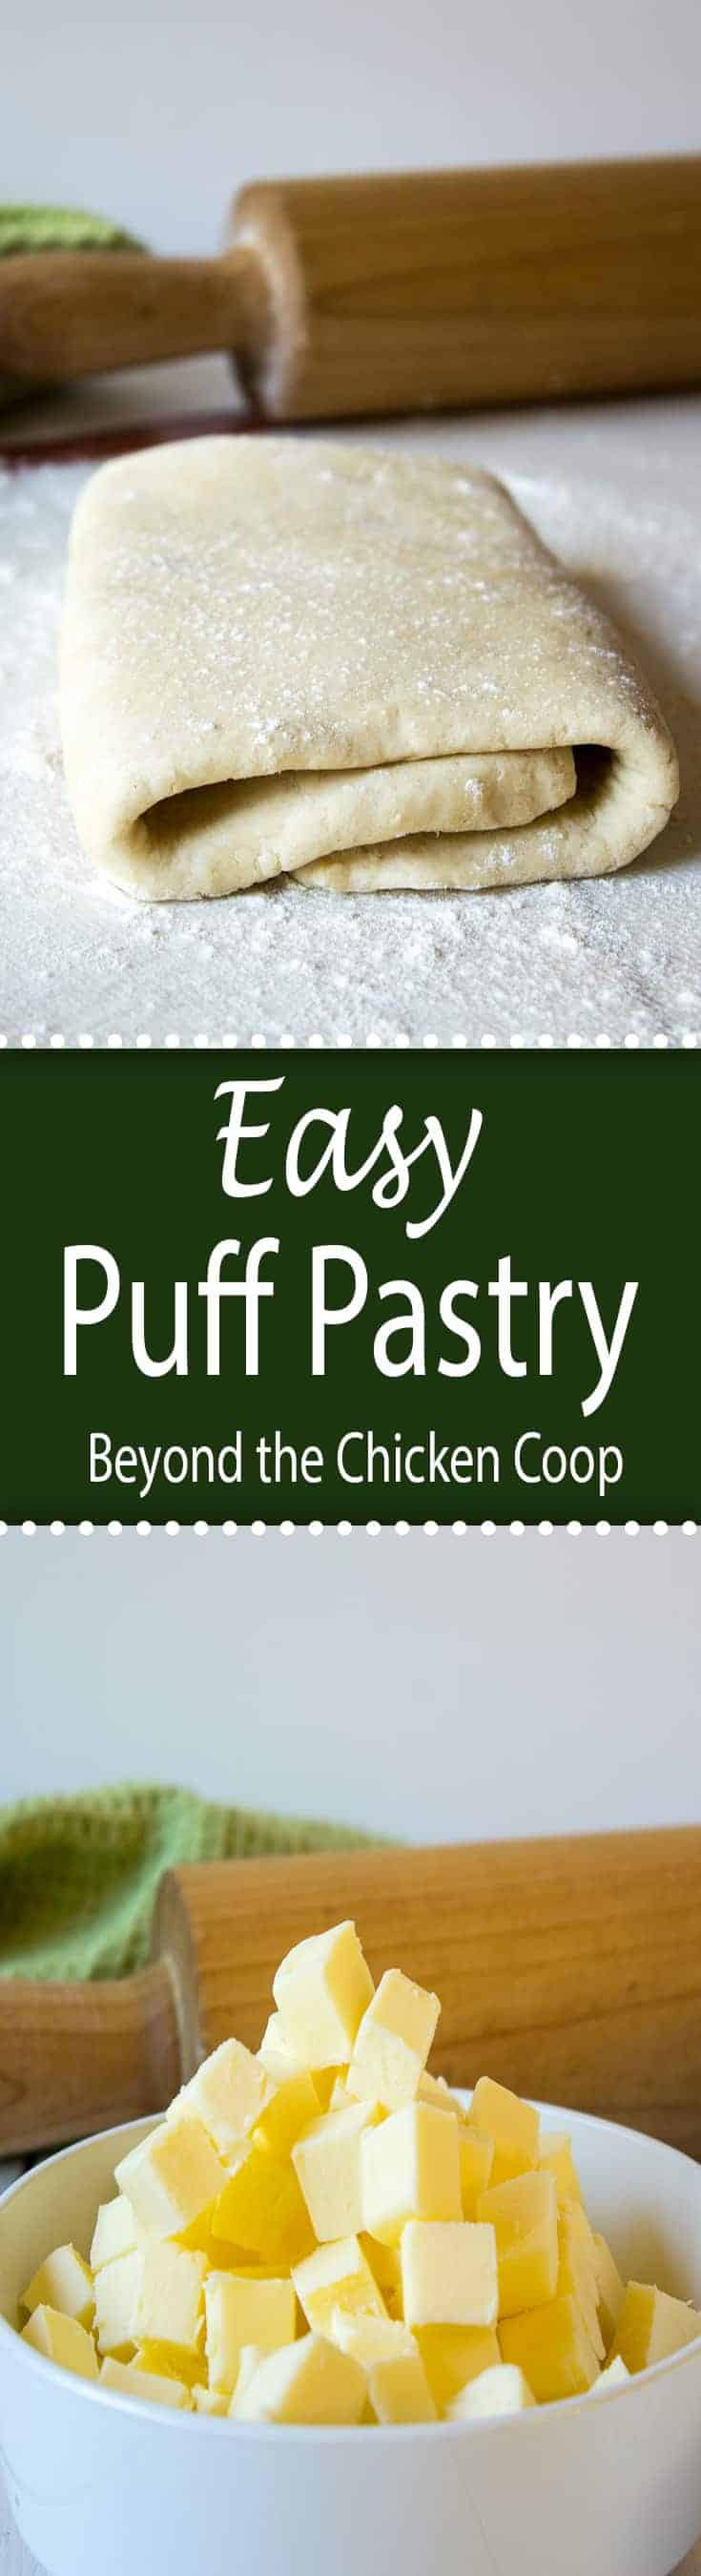 Make your own puff pastry at home using this Easy Puff Pastry Recipe! #puffpastry #easypuffpastry #baking